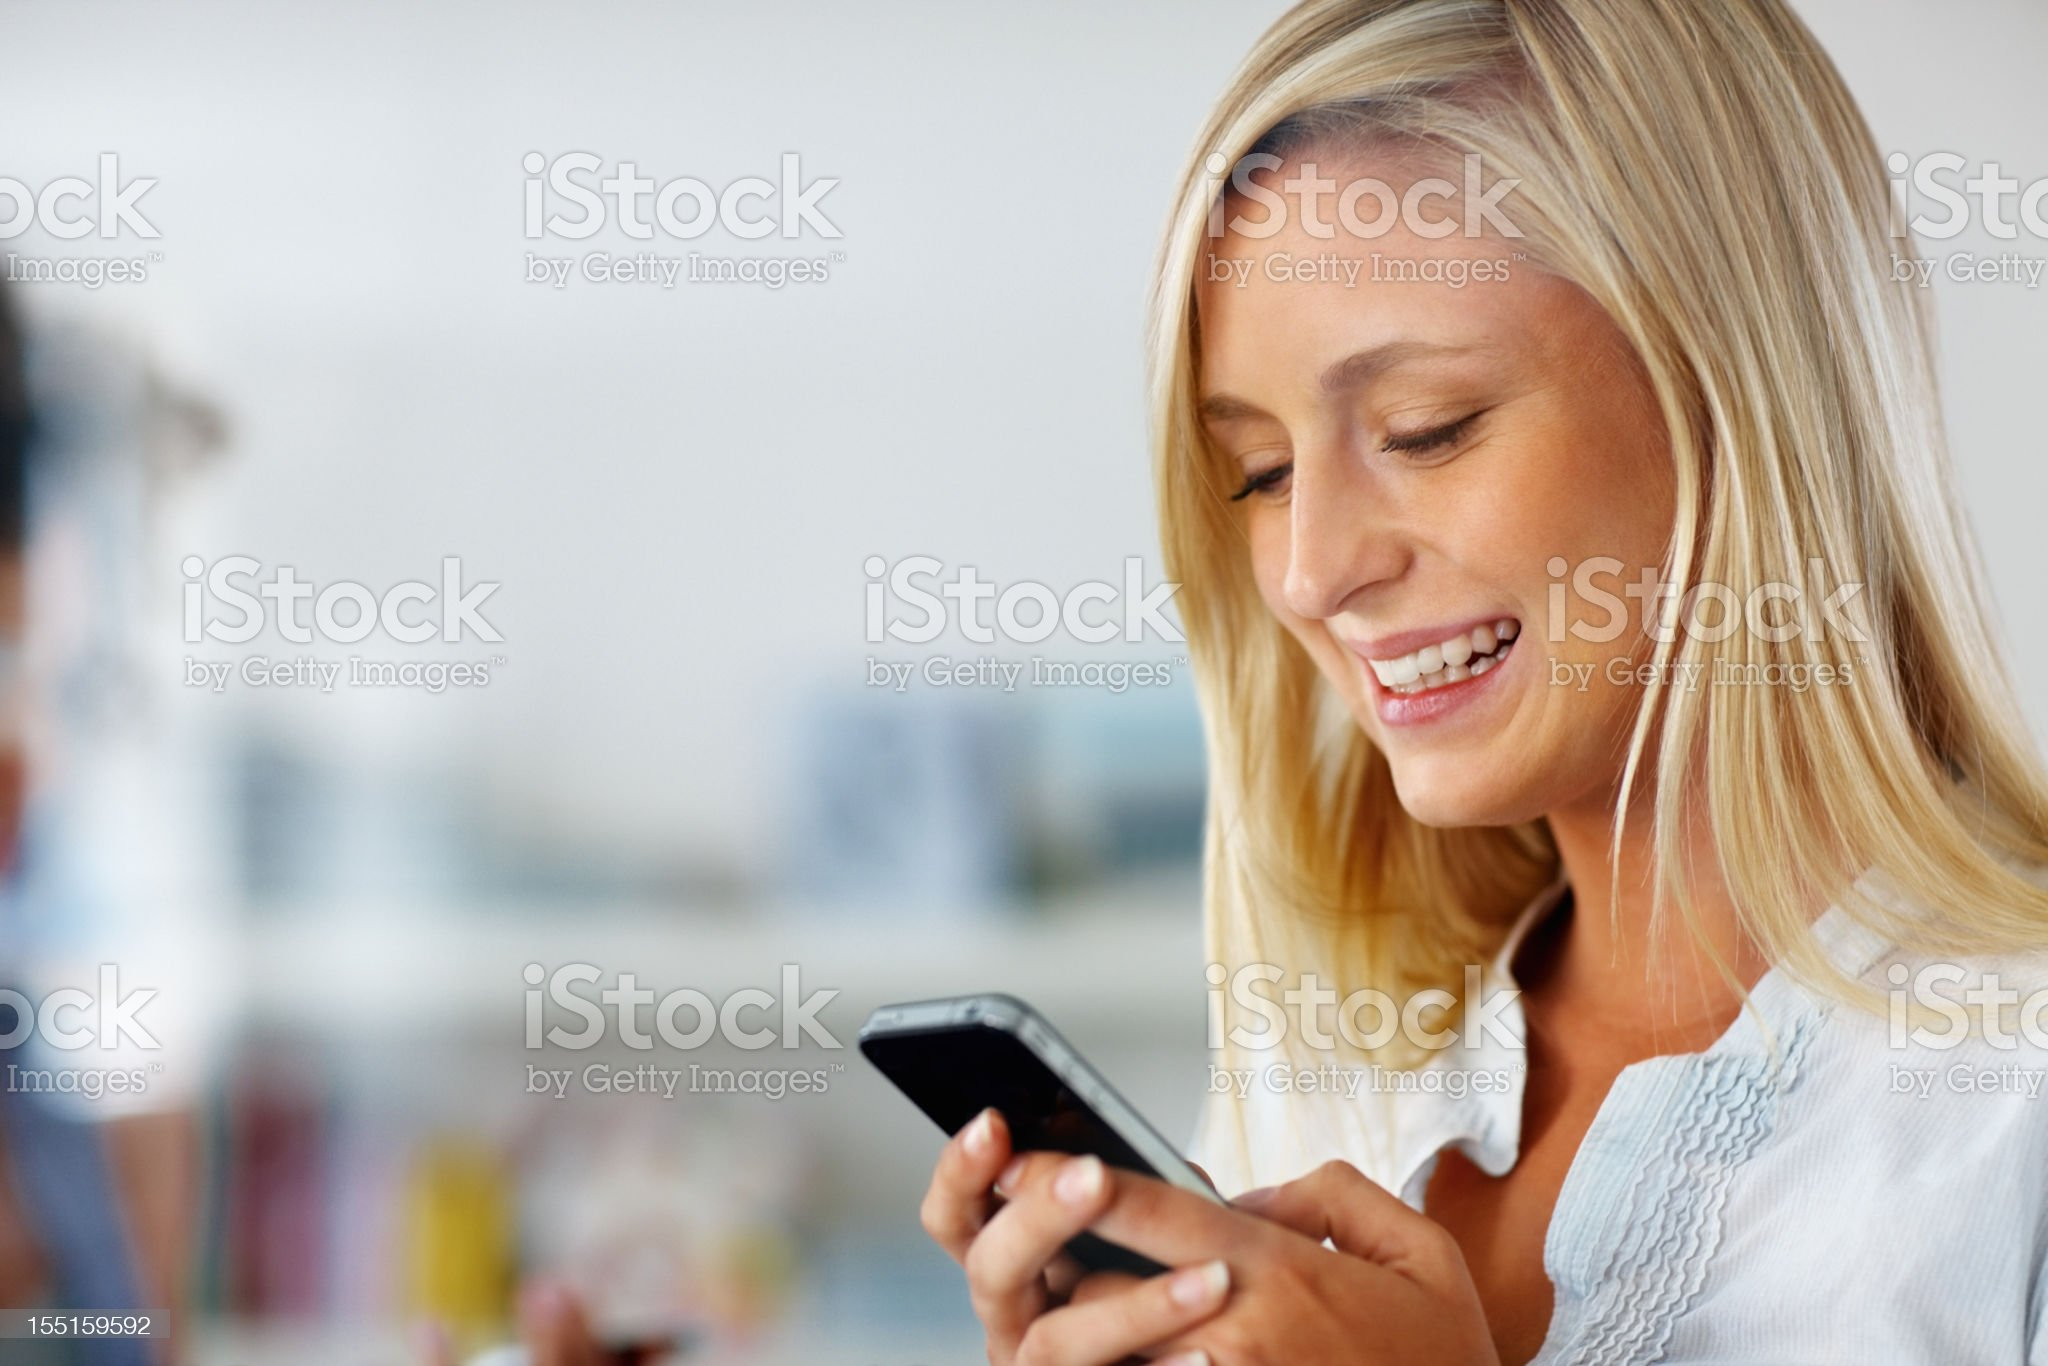 Close-up of blonde woman smiling while using smartphone royalty-free stock photo